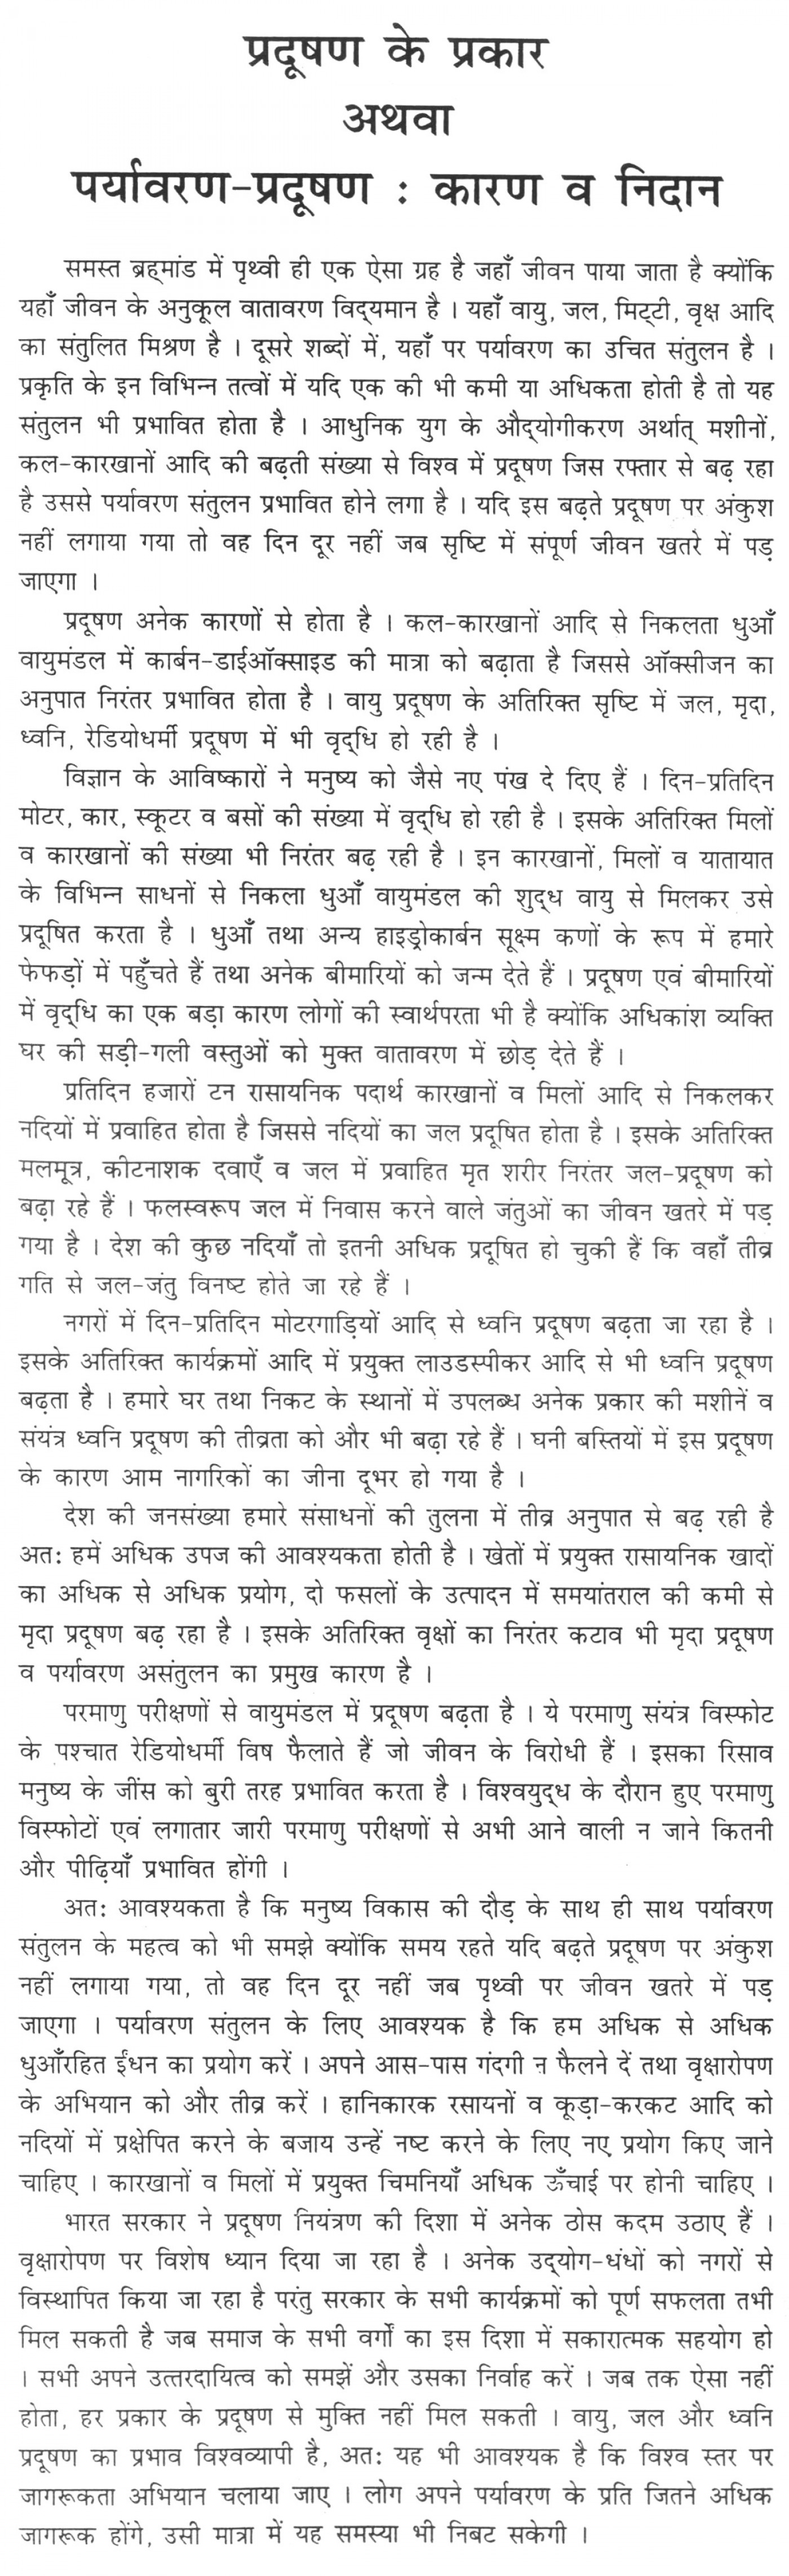 014 Good Habits Essay In Hindi Exceptional Reading Habit Wikipedia 1400